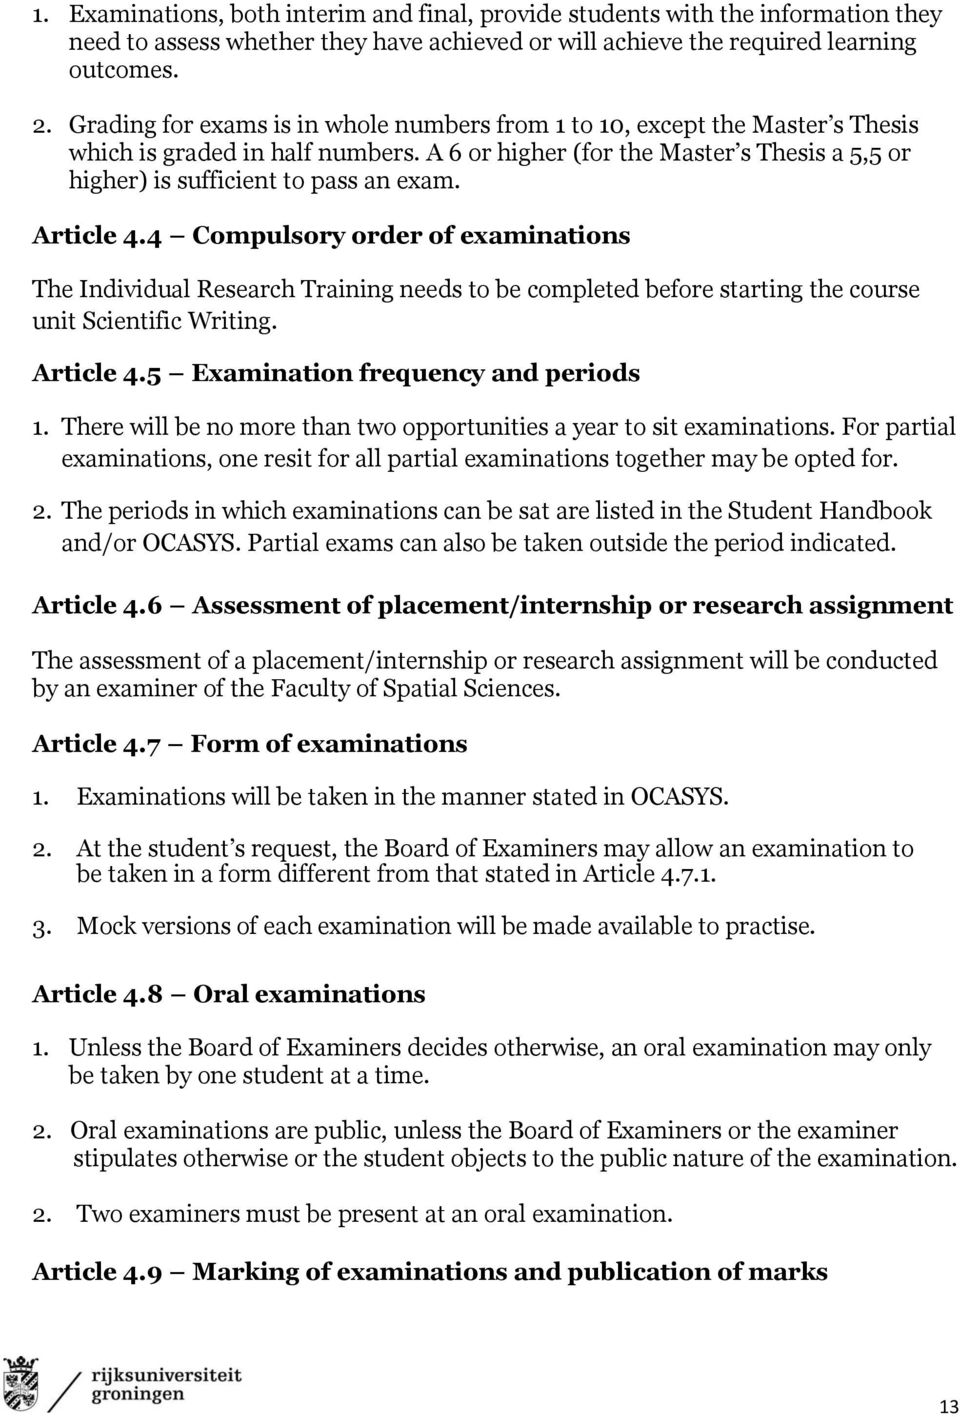 Article 4.4 Compulsory order of examinations The Individual Research Training needs to be completed before starting the course unit Scientific Writing. Article 4.5 Examination frequency and periods 1.